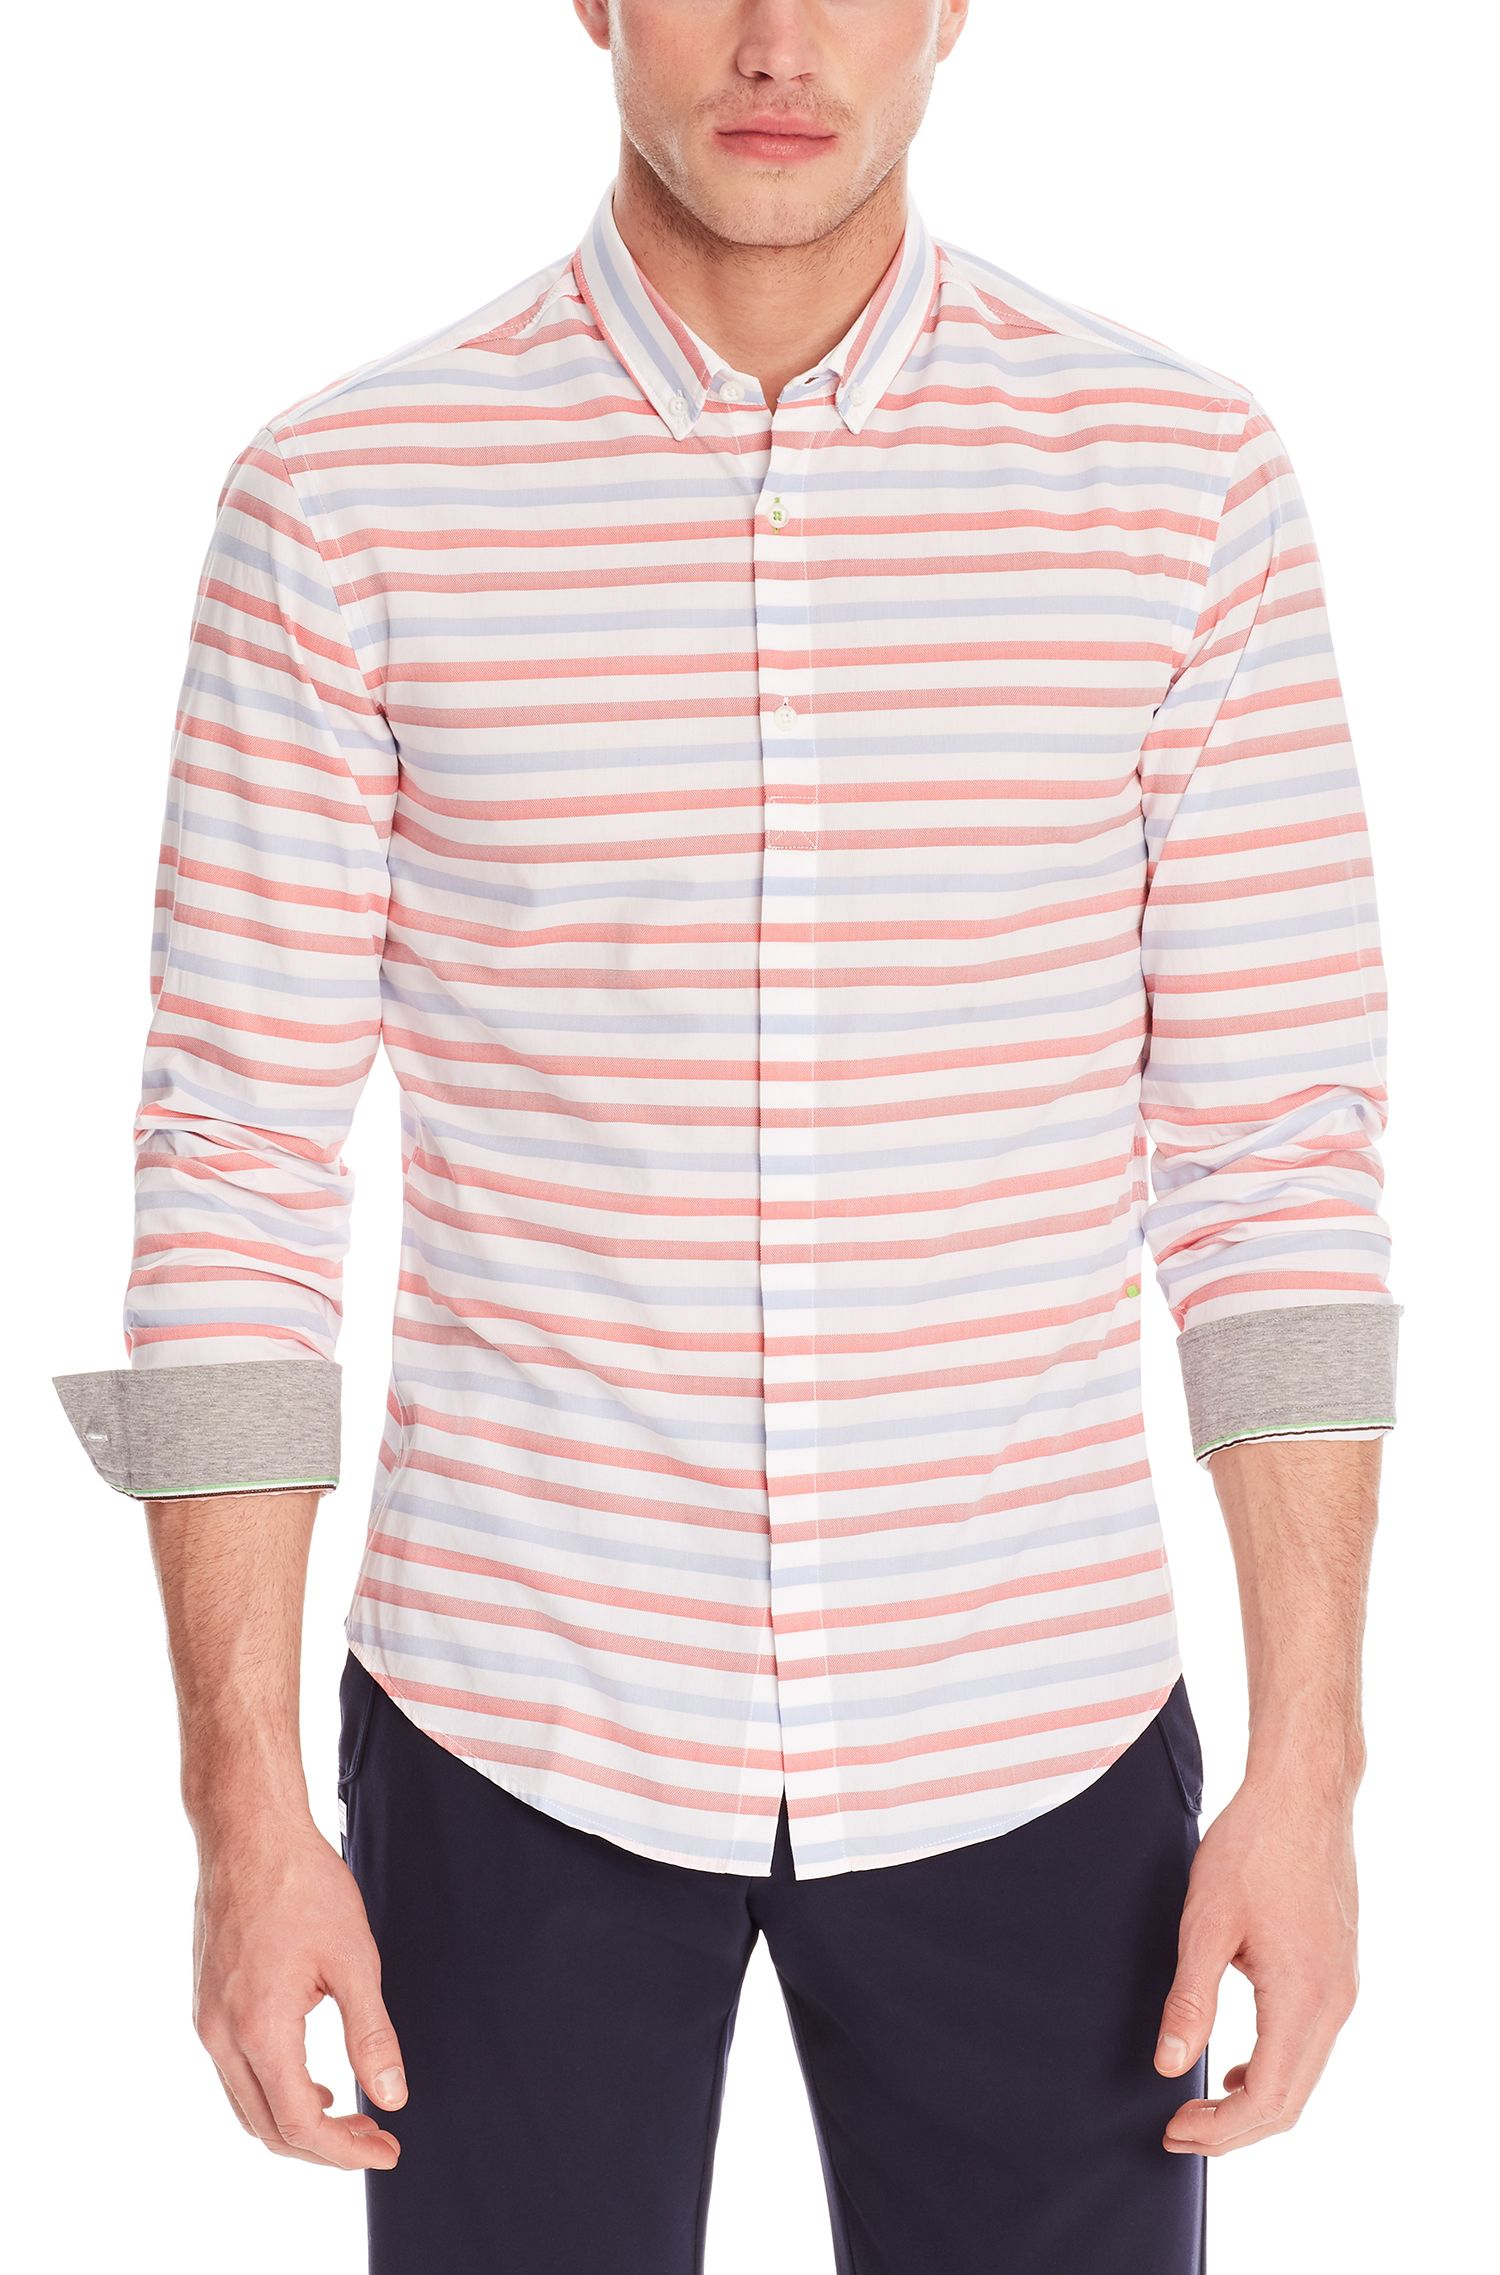 Cotton Button Down Shirt, Slim Fit | Belfiore